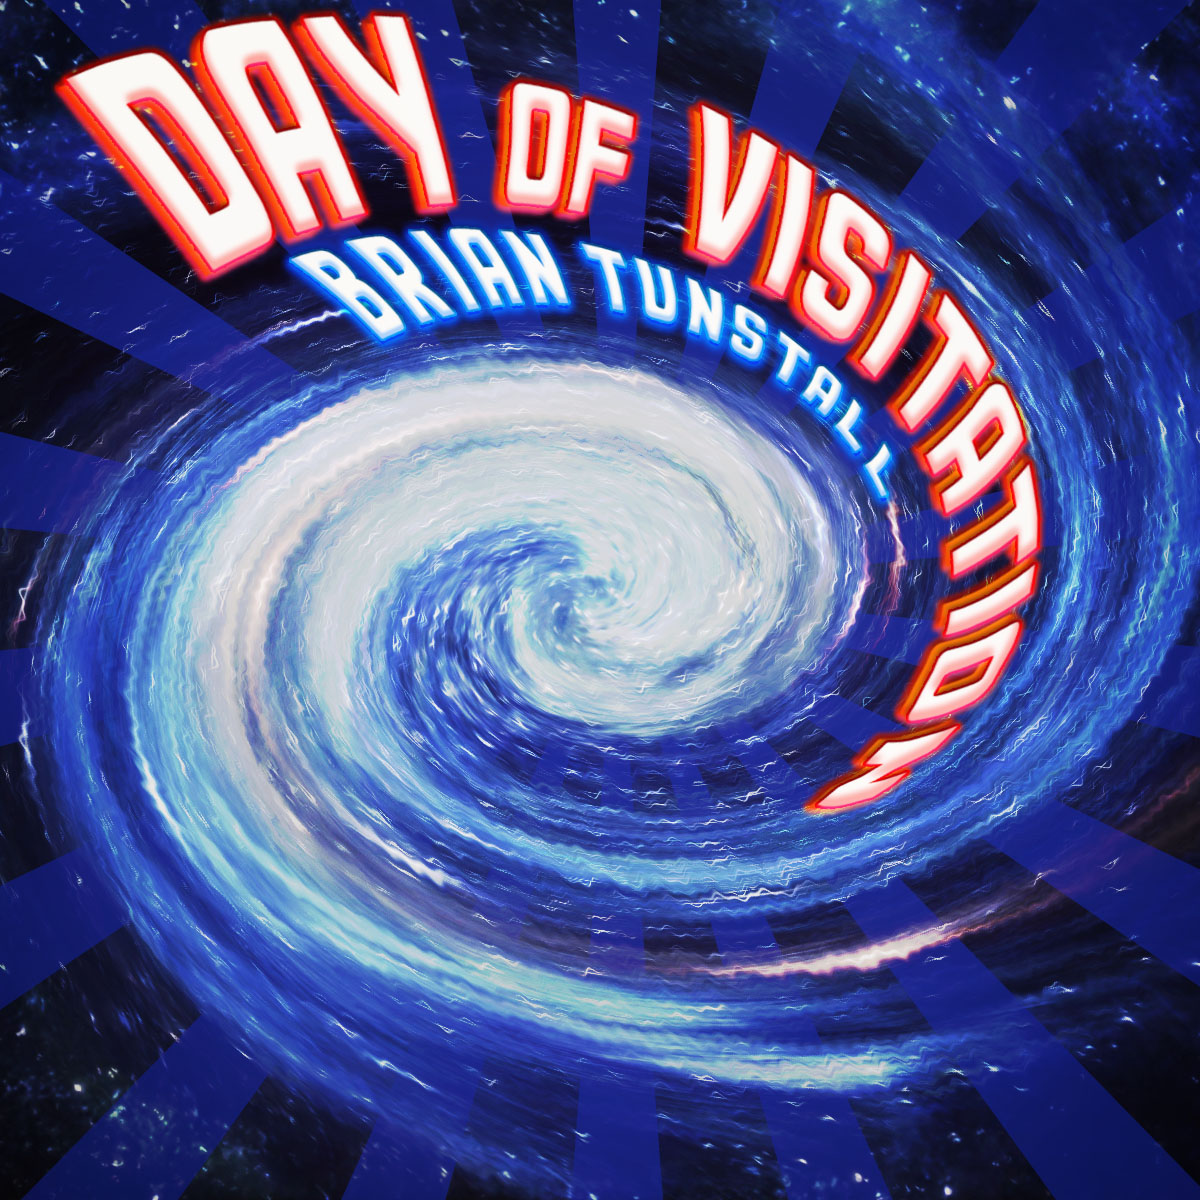 Day of Visitation Cover Art